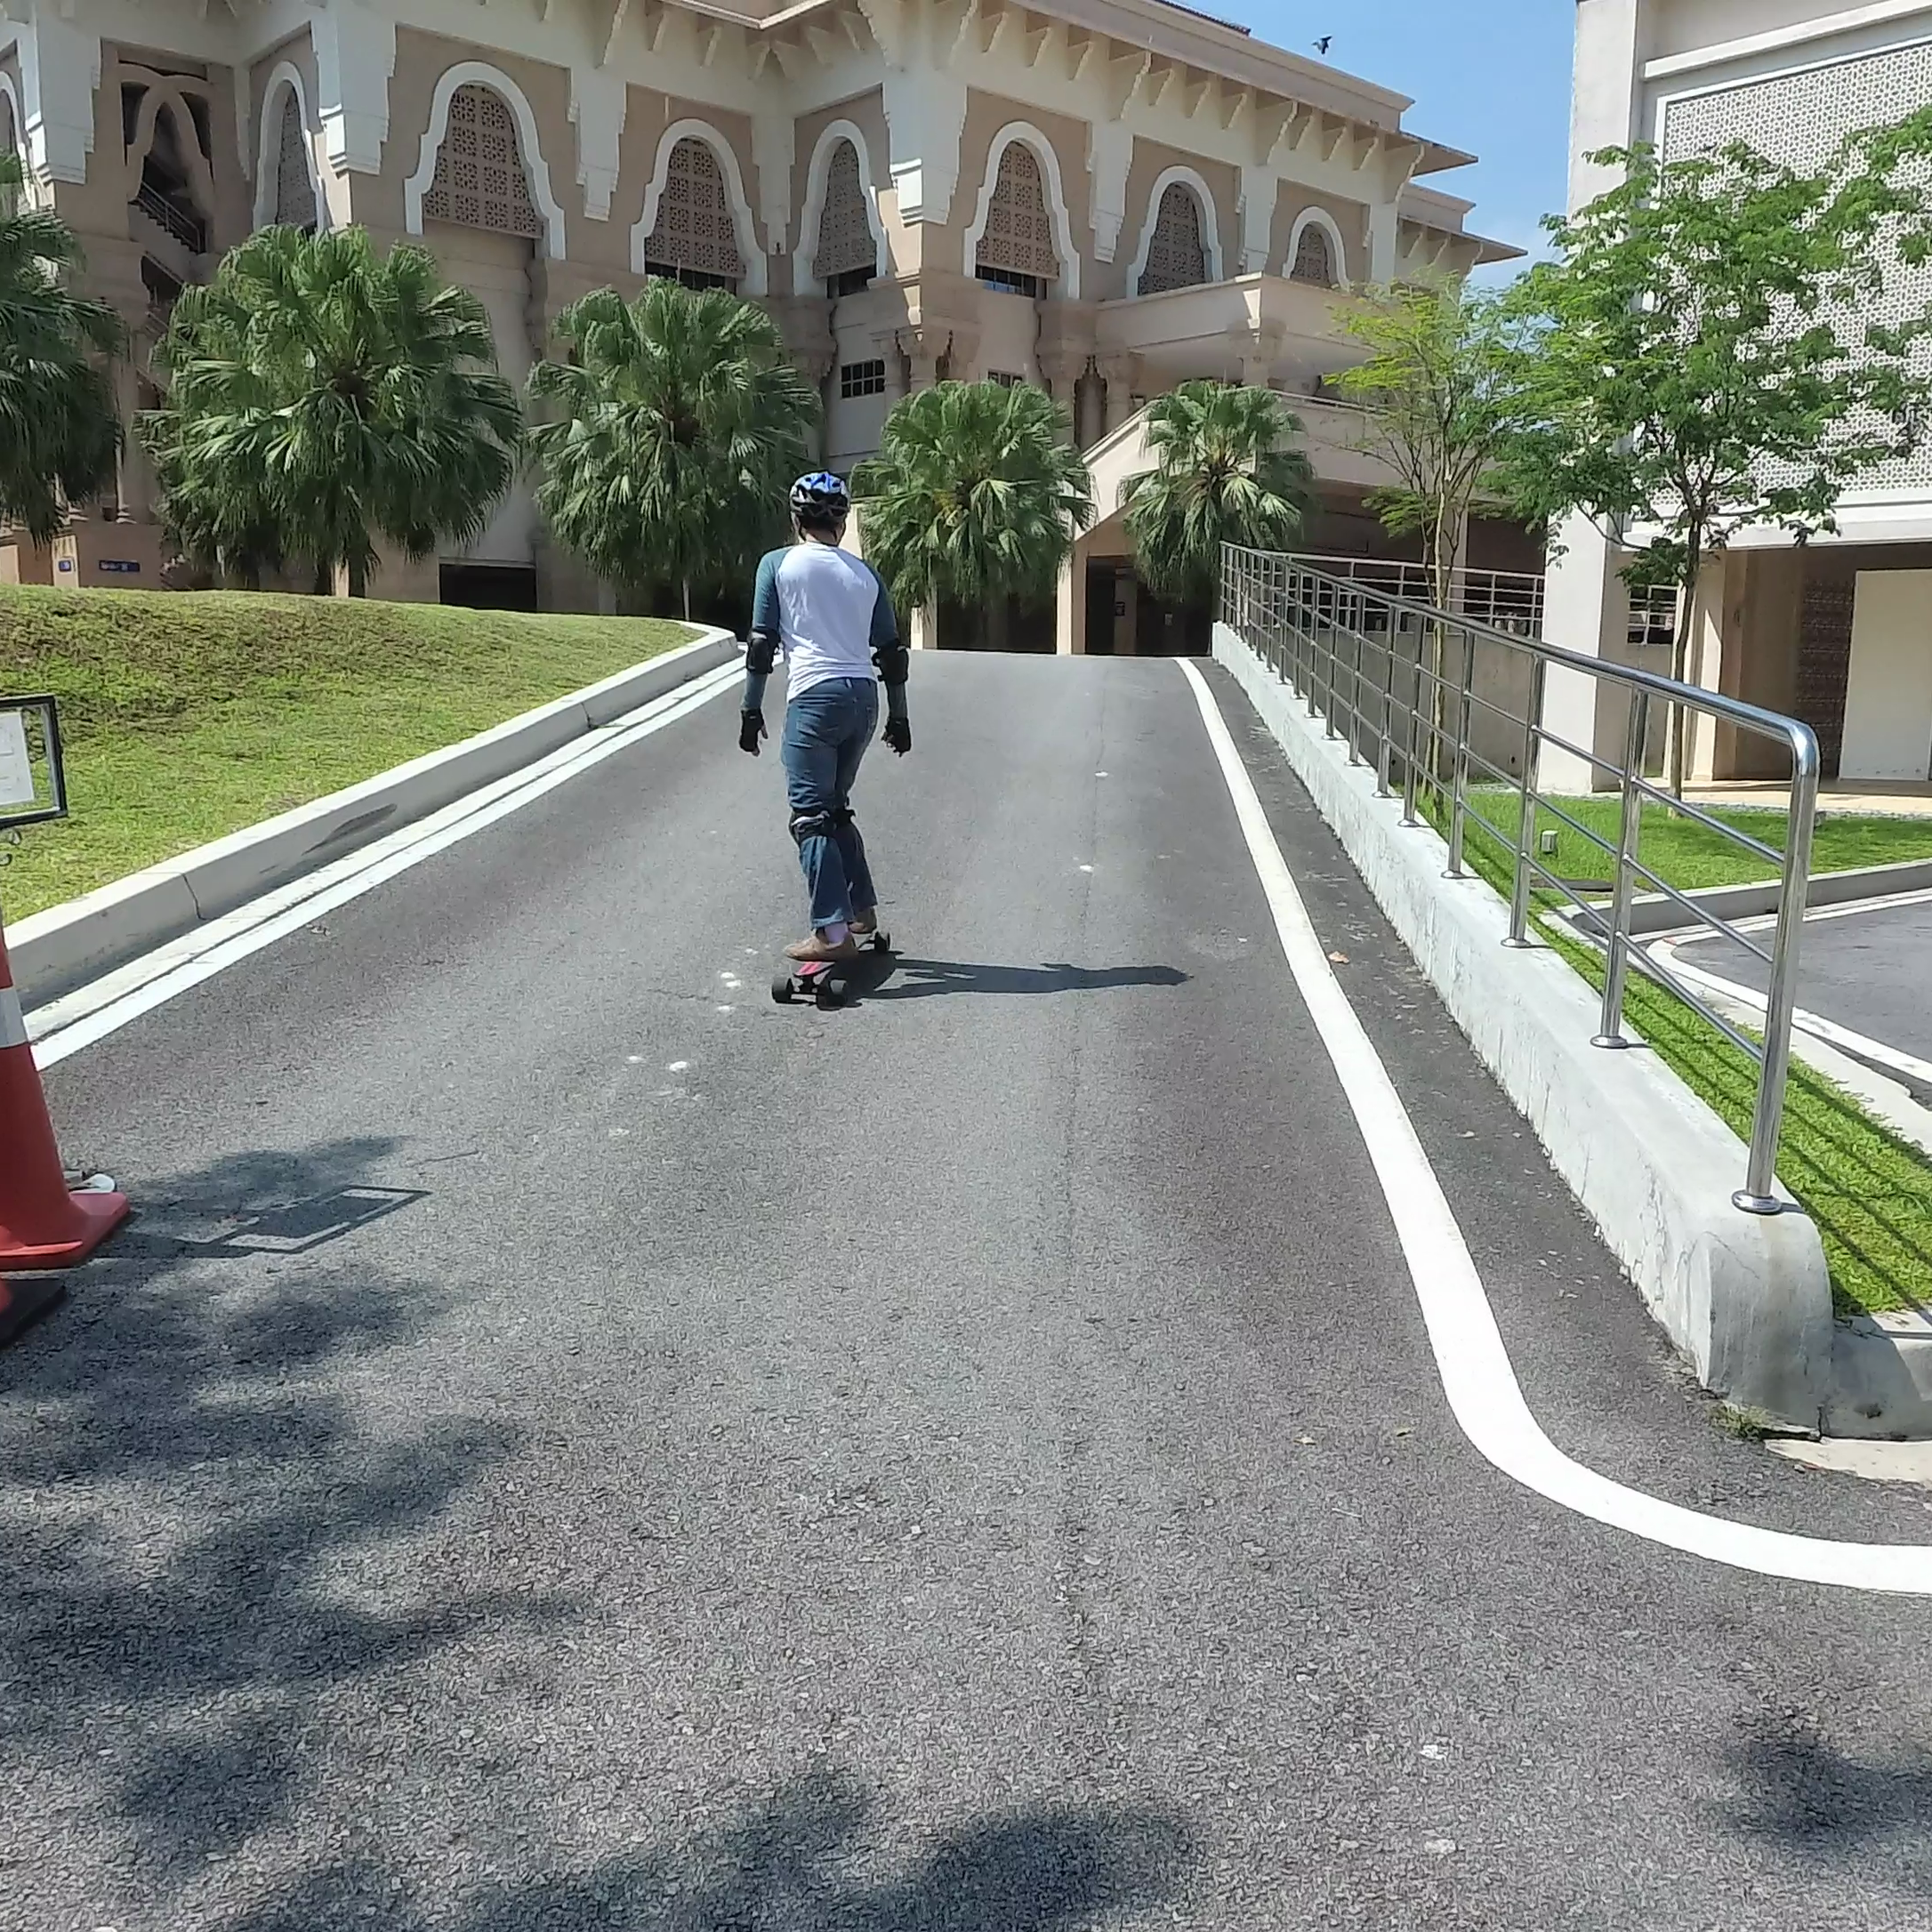 Teamgee Uphill Square Electric Skateboard Hq